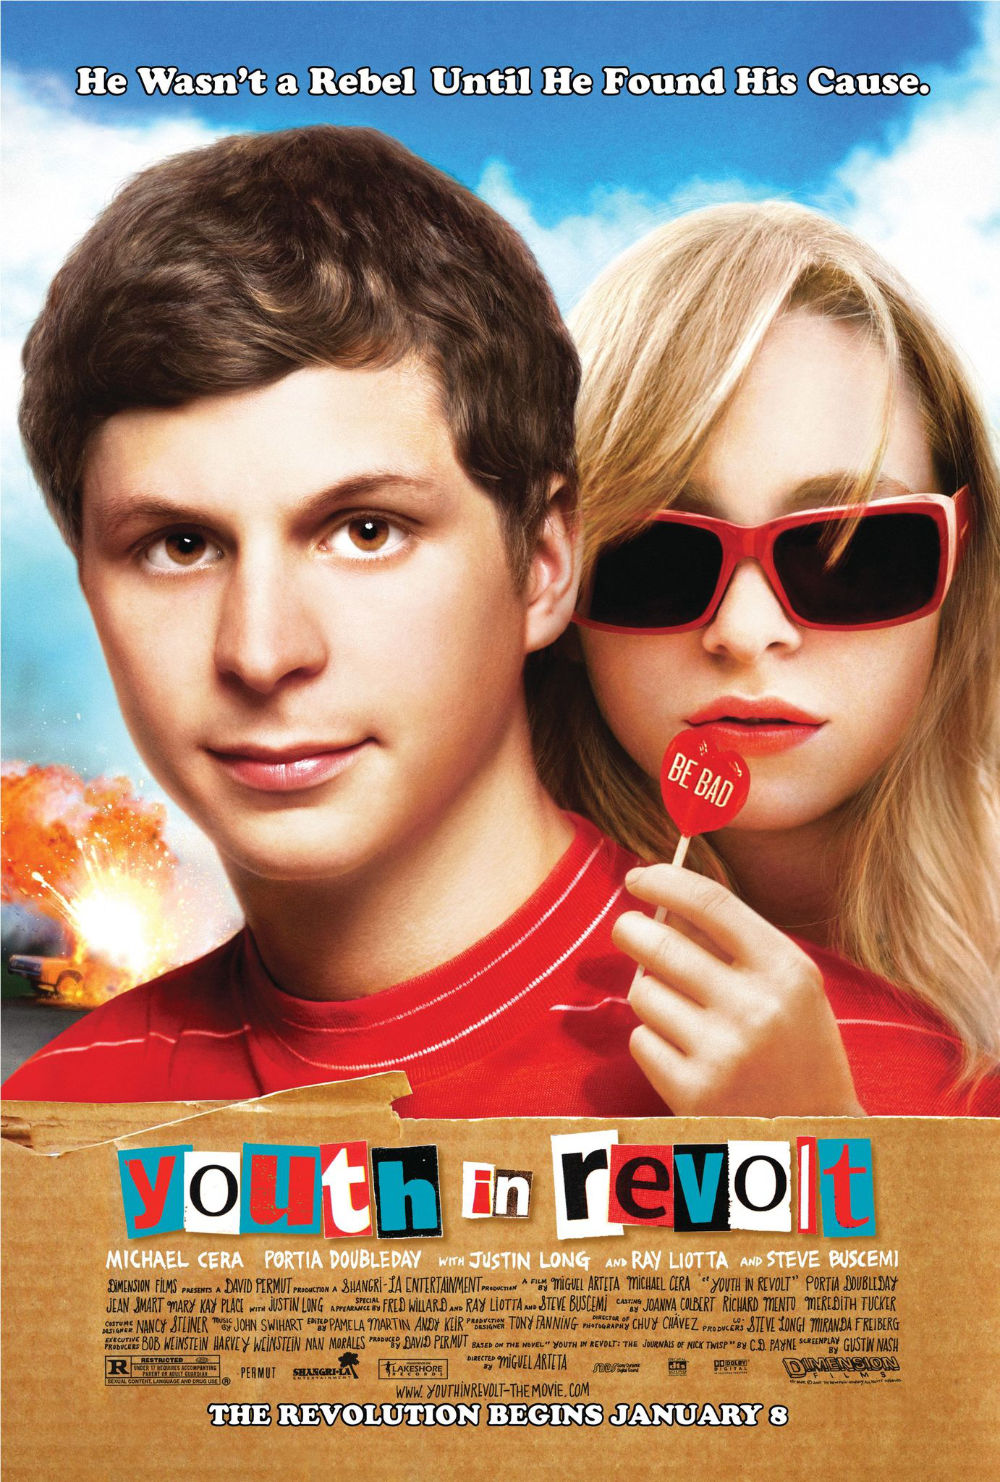 You are currently viewing Notes On A Film: Youth In Revolt